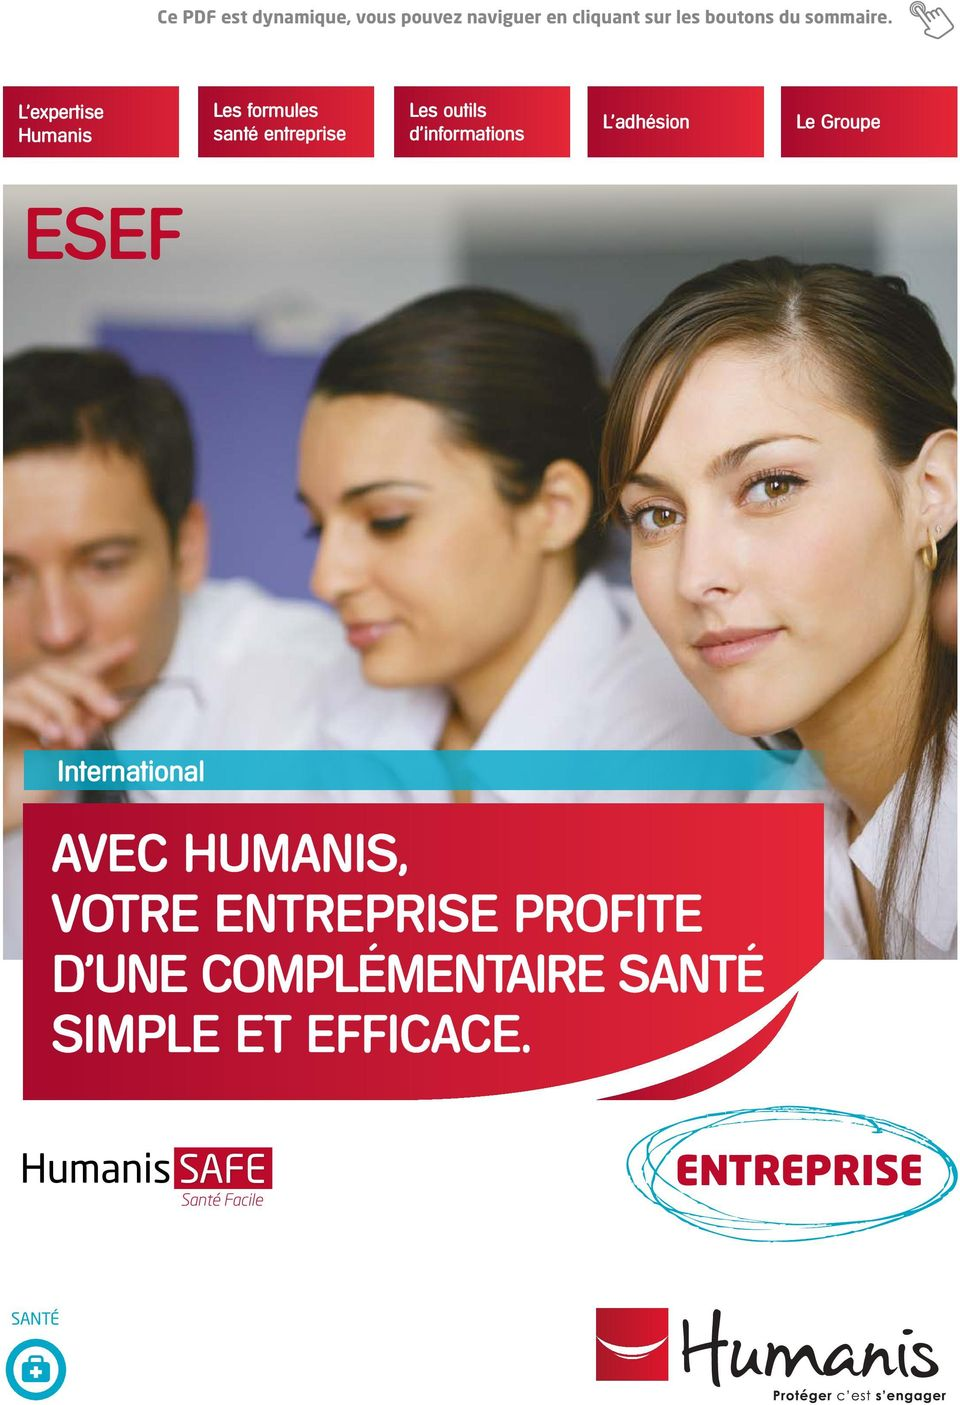 L expertise ESEF International AVEC HUMANIS, VOTRE